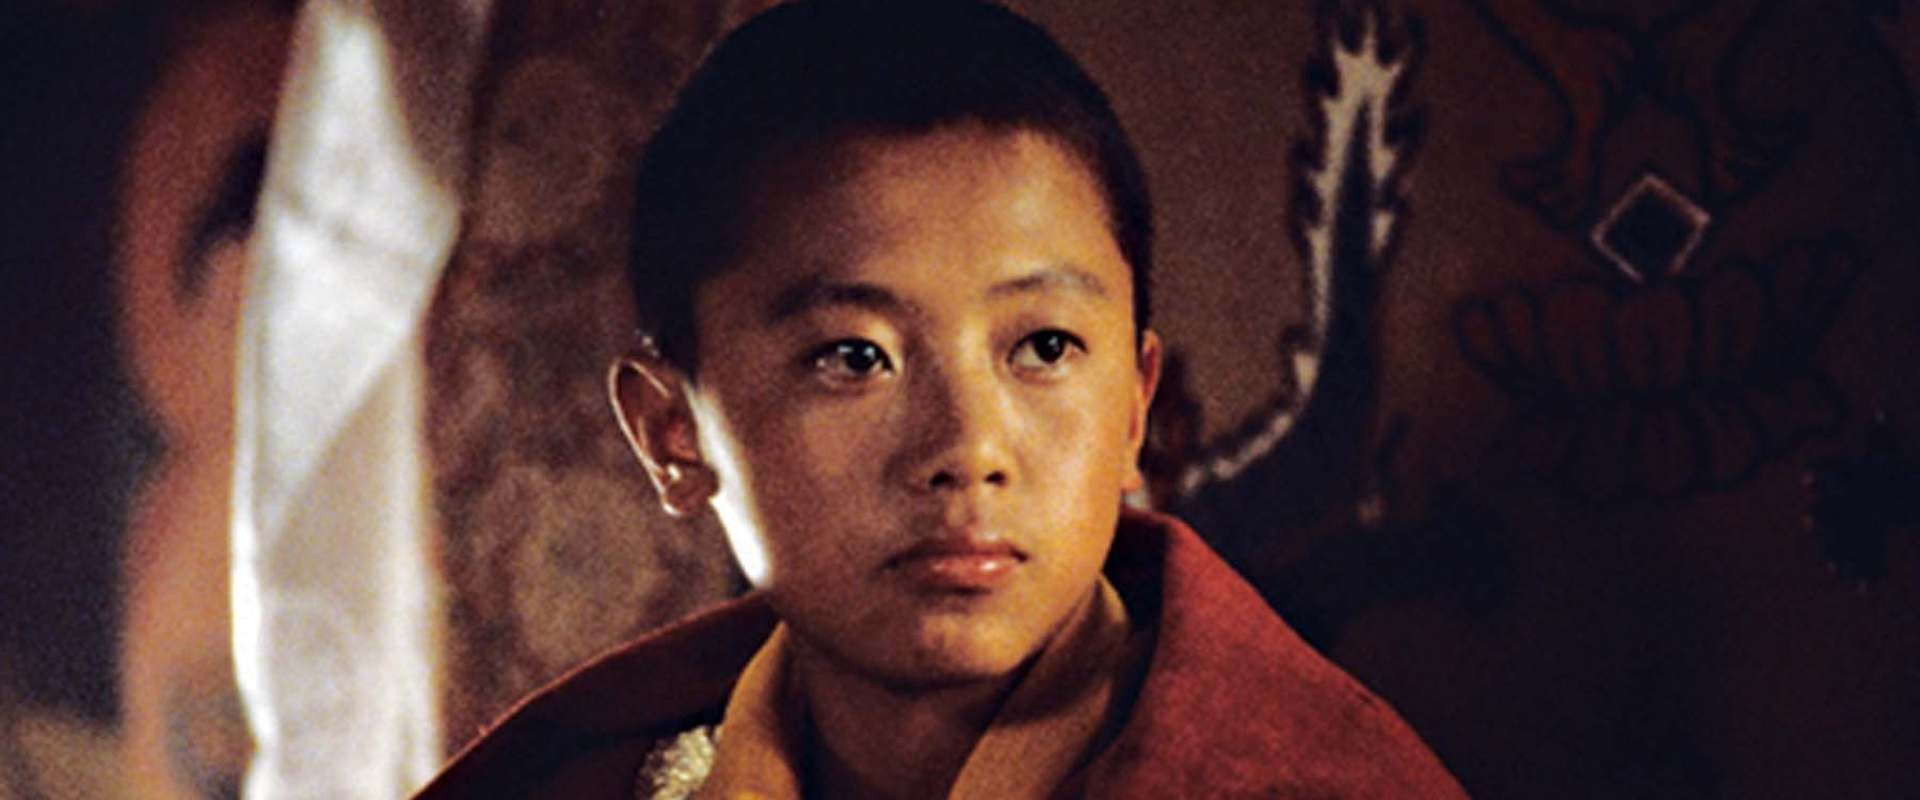 7 years in tibet movie